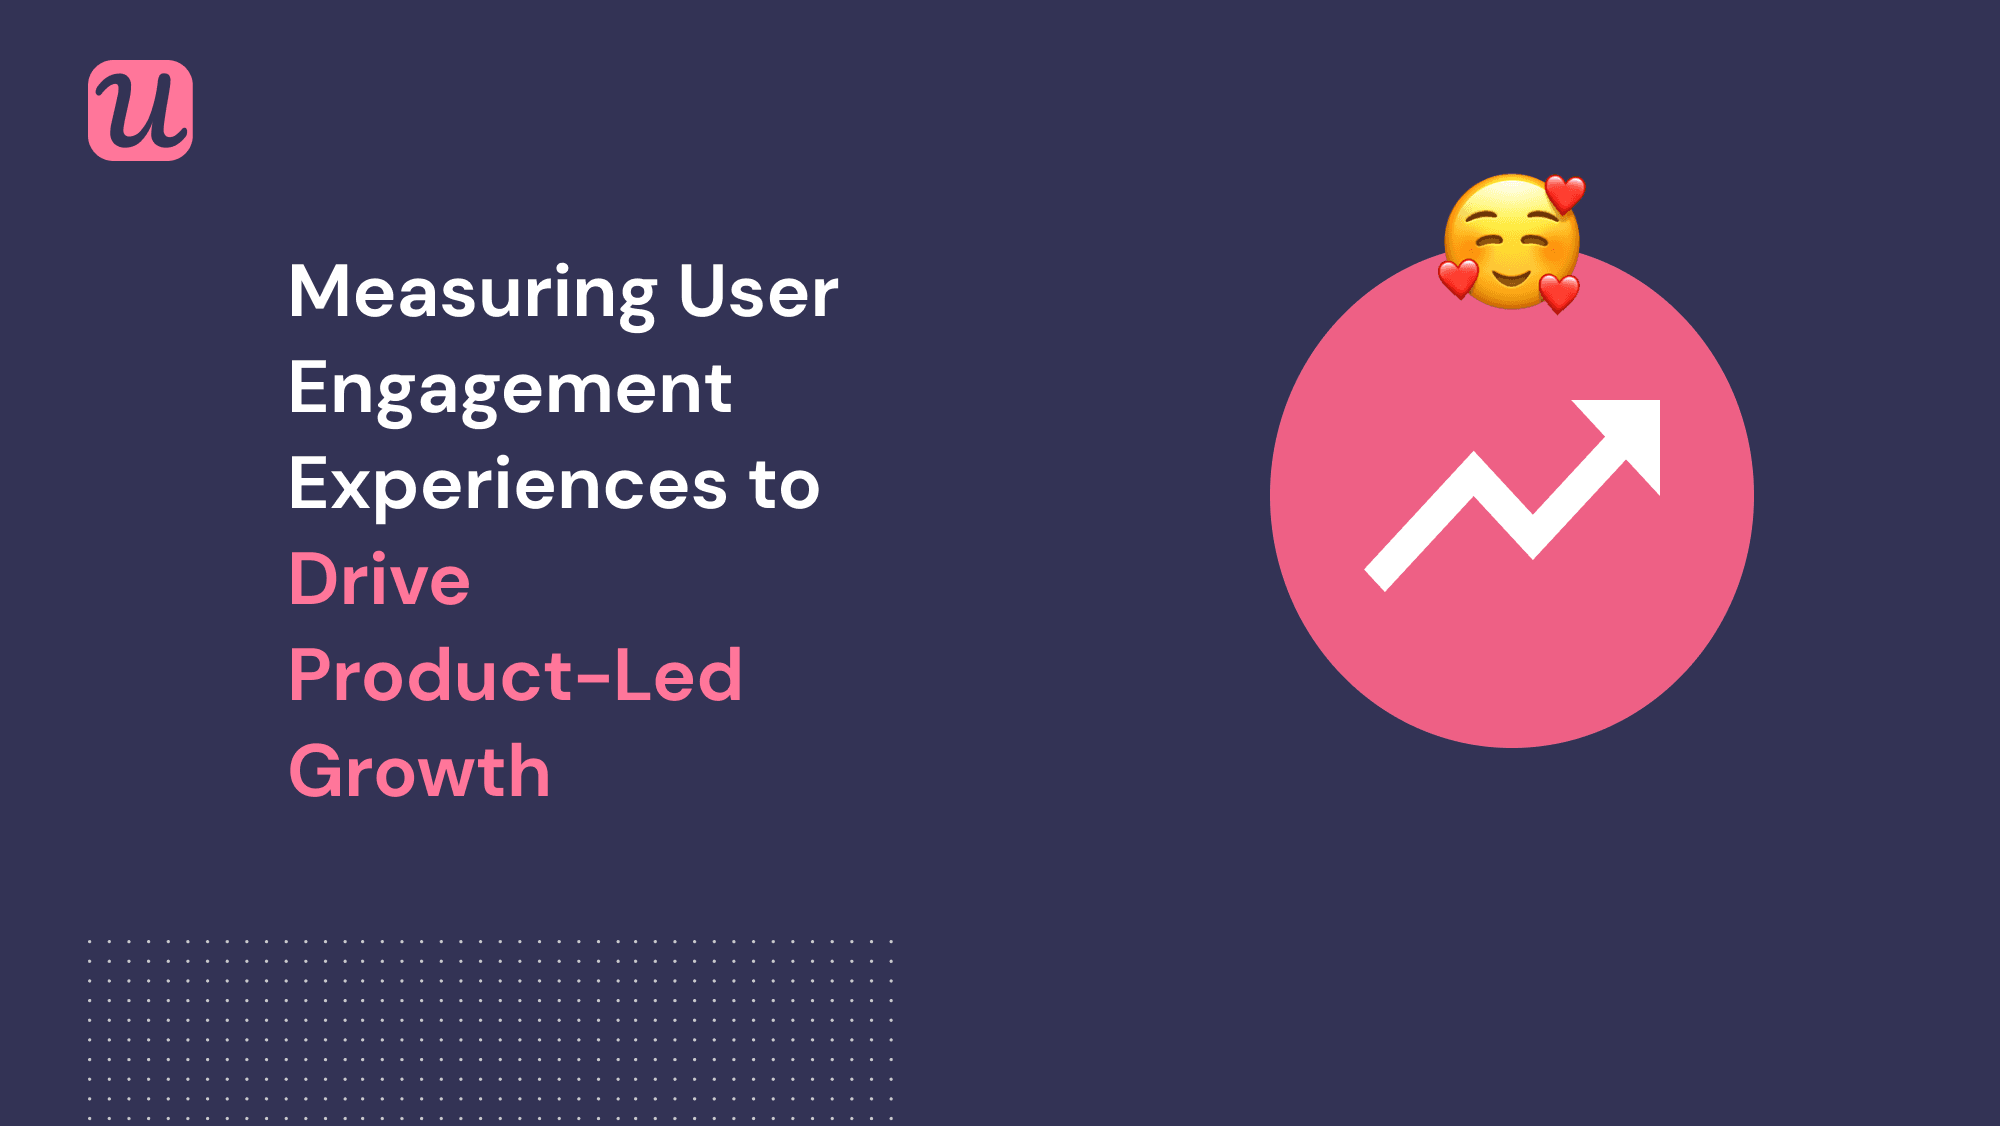 Measuring User Engagement Experiences to Drive Product-Led Growth